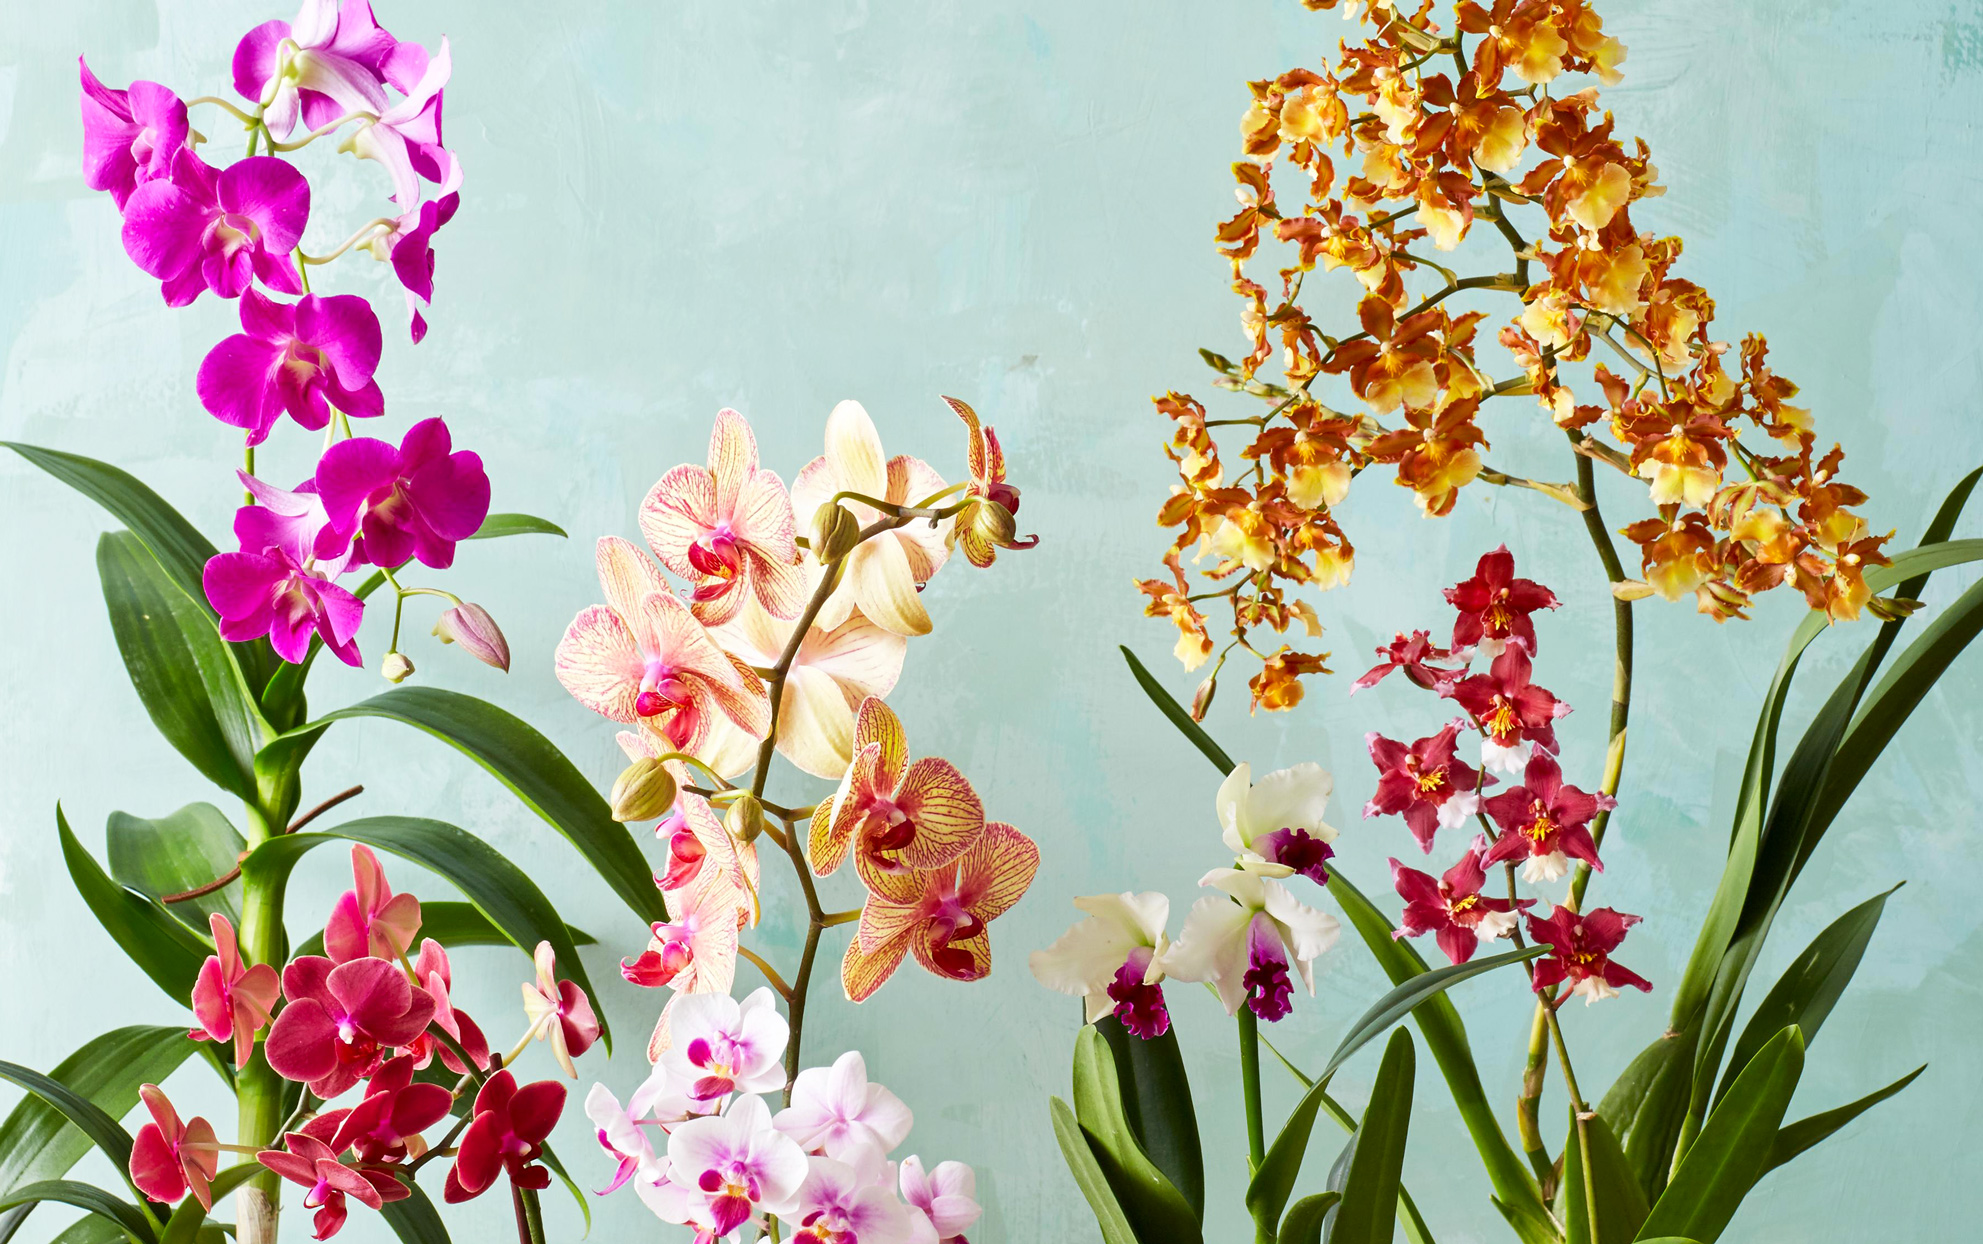 Multiple orchids on a light blue background